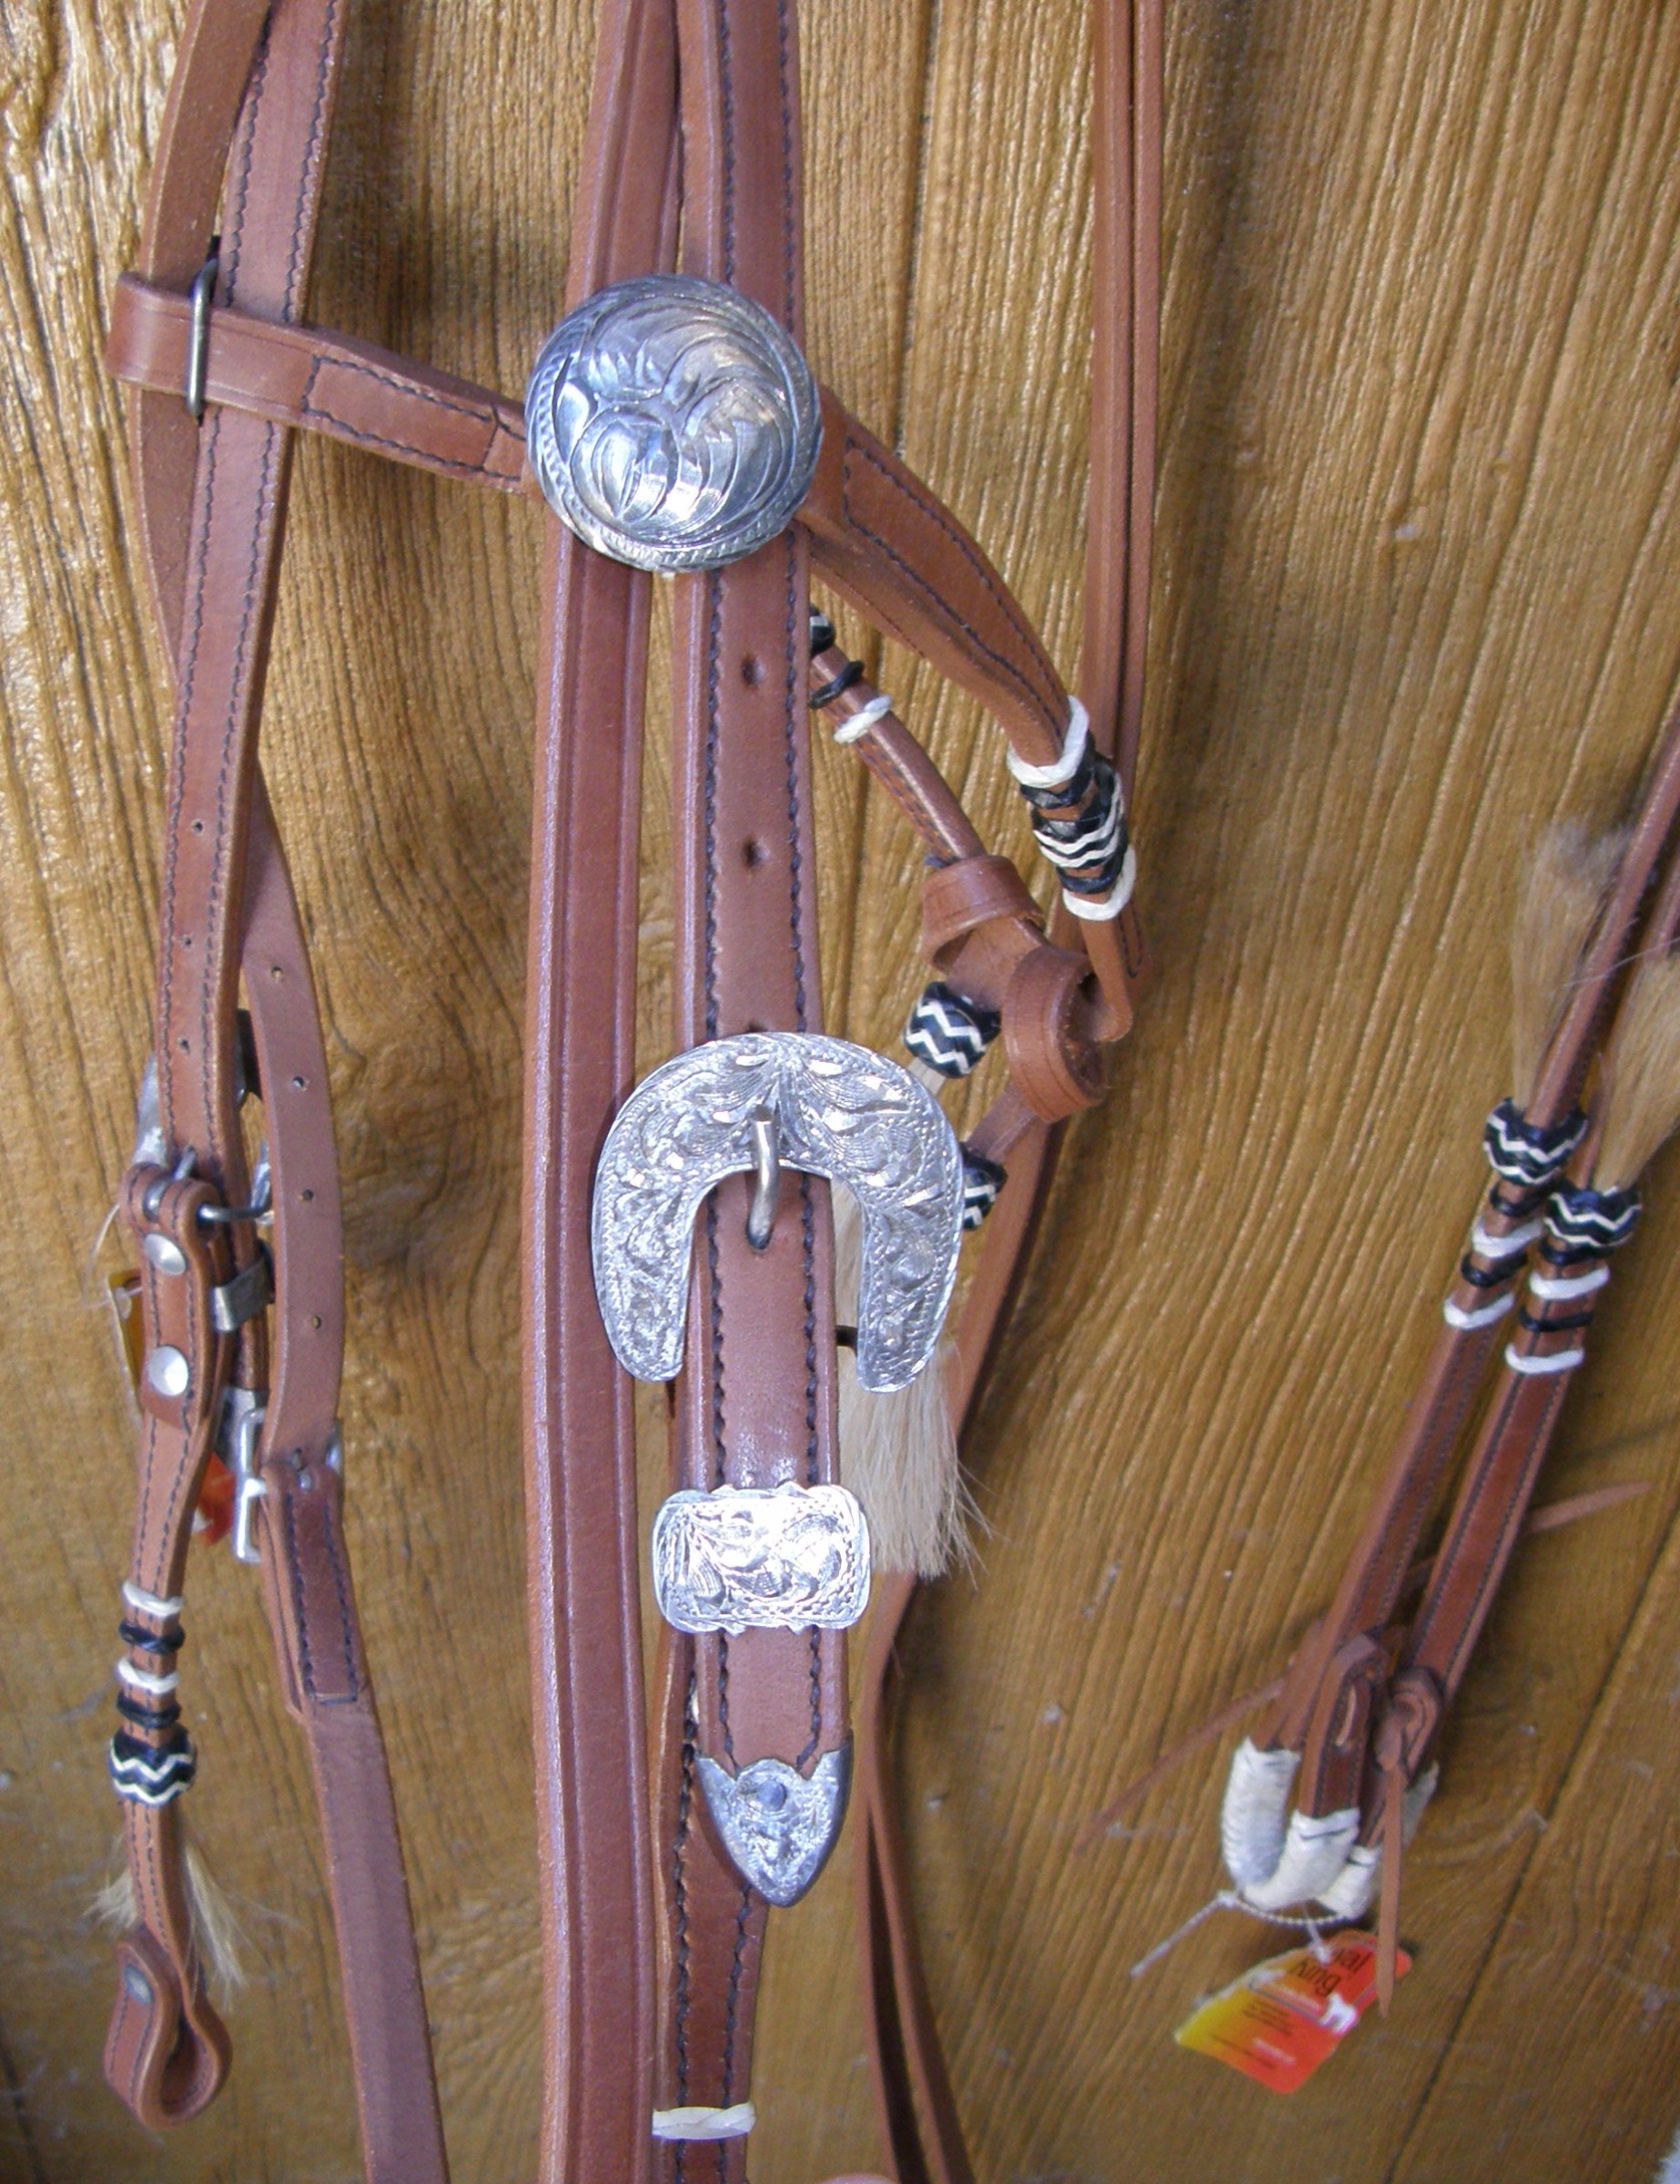 Royal King Braided Rawhide Futurity Western Bridle Knotted Brow Western Headstall Split Reins Chestnut Leather Horsehair Tassels California Braid Horse